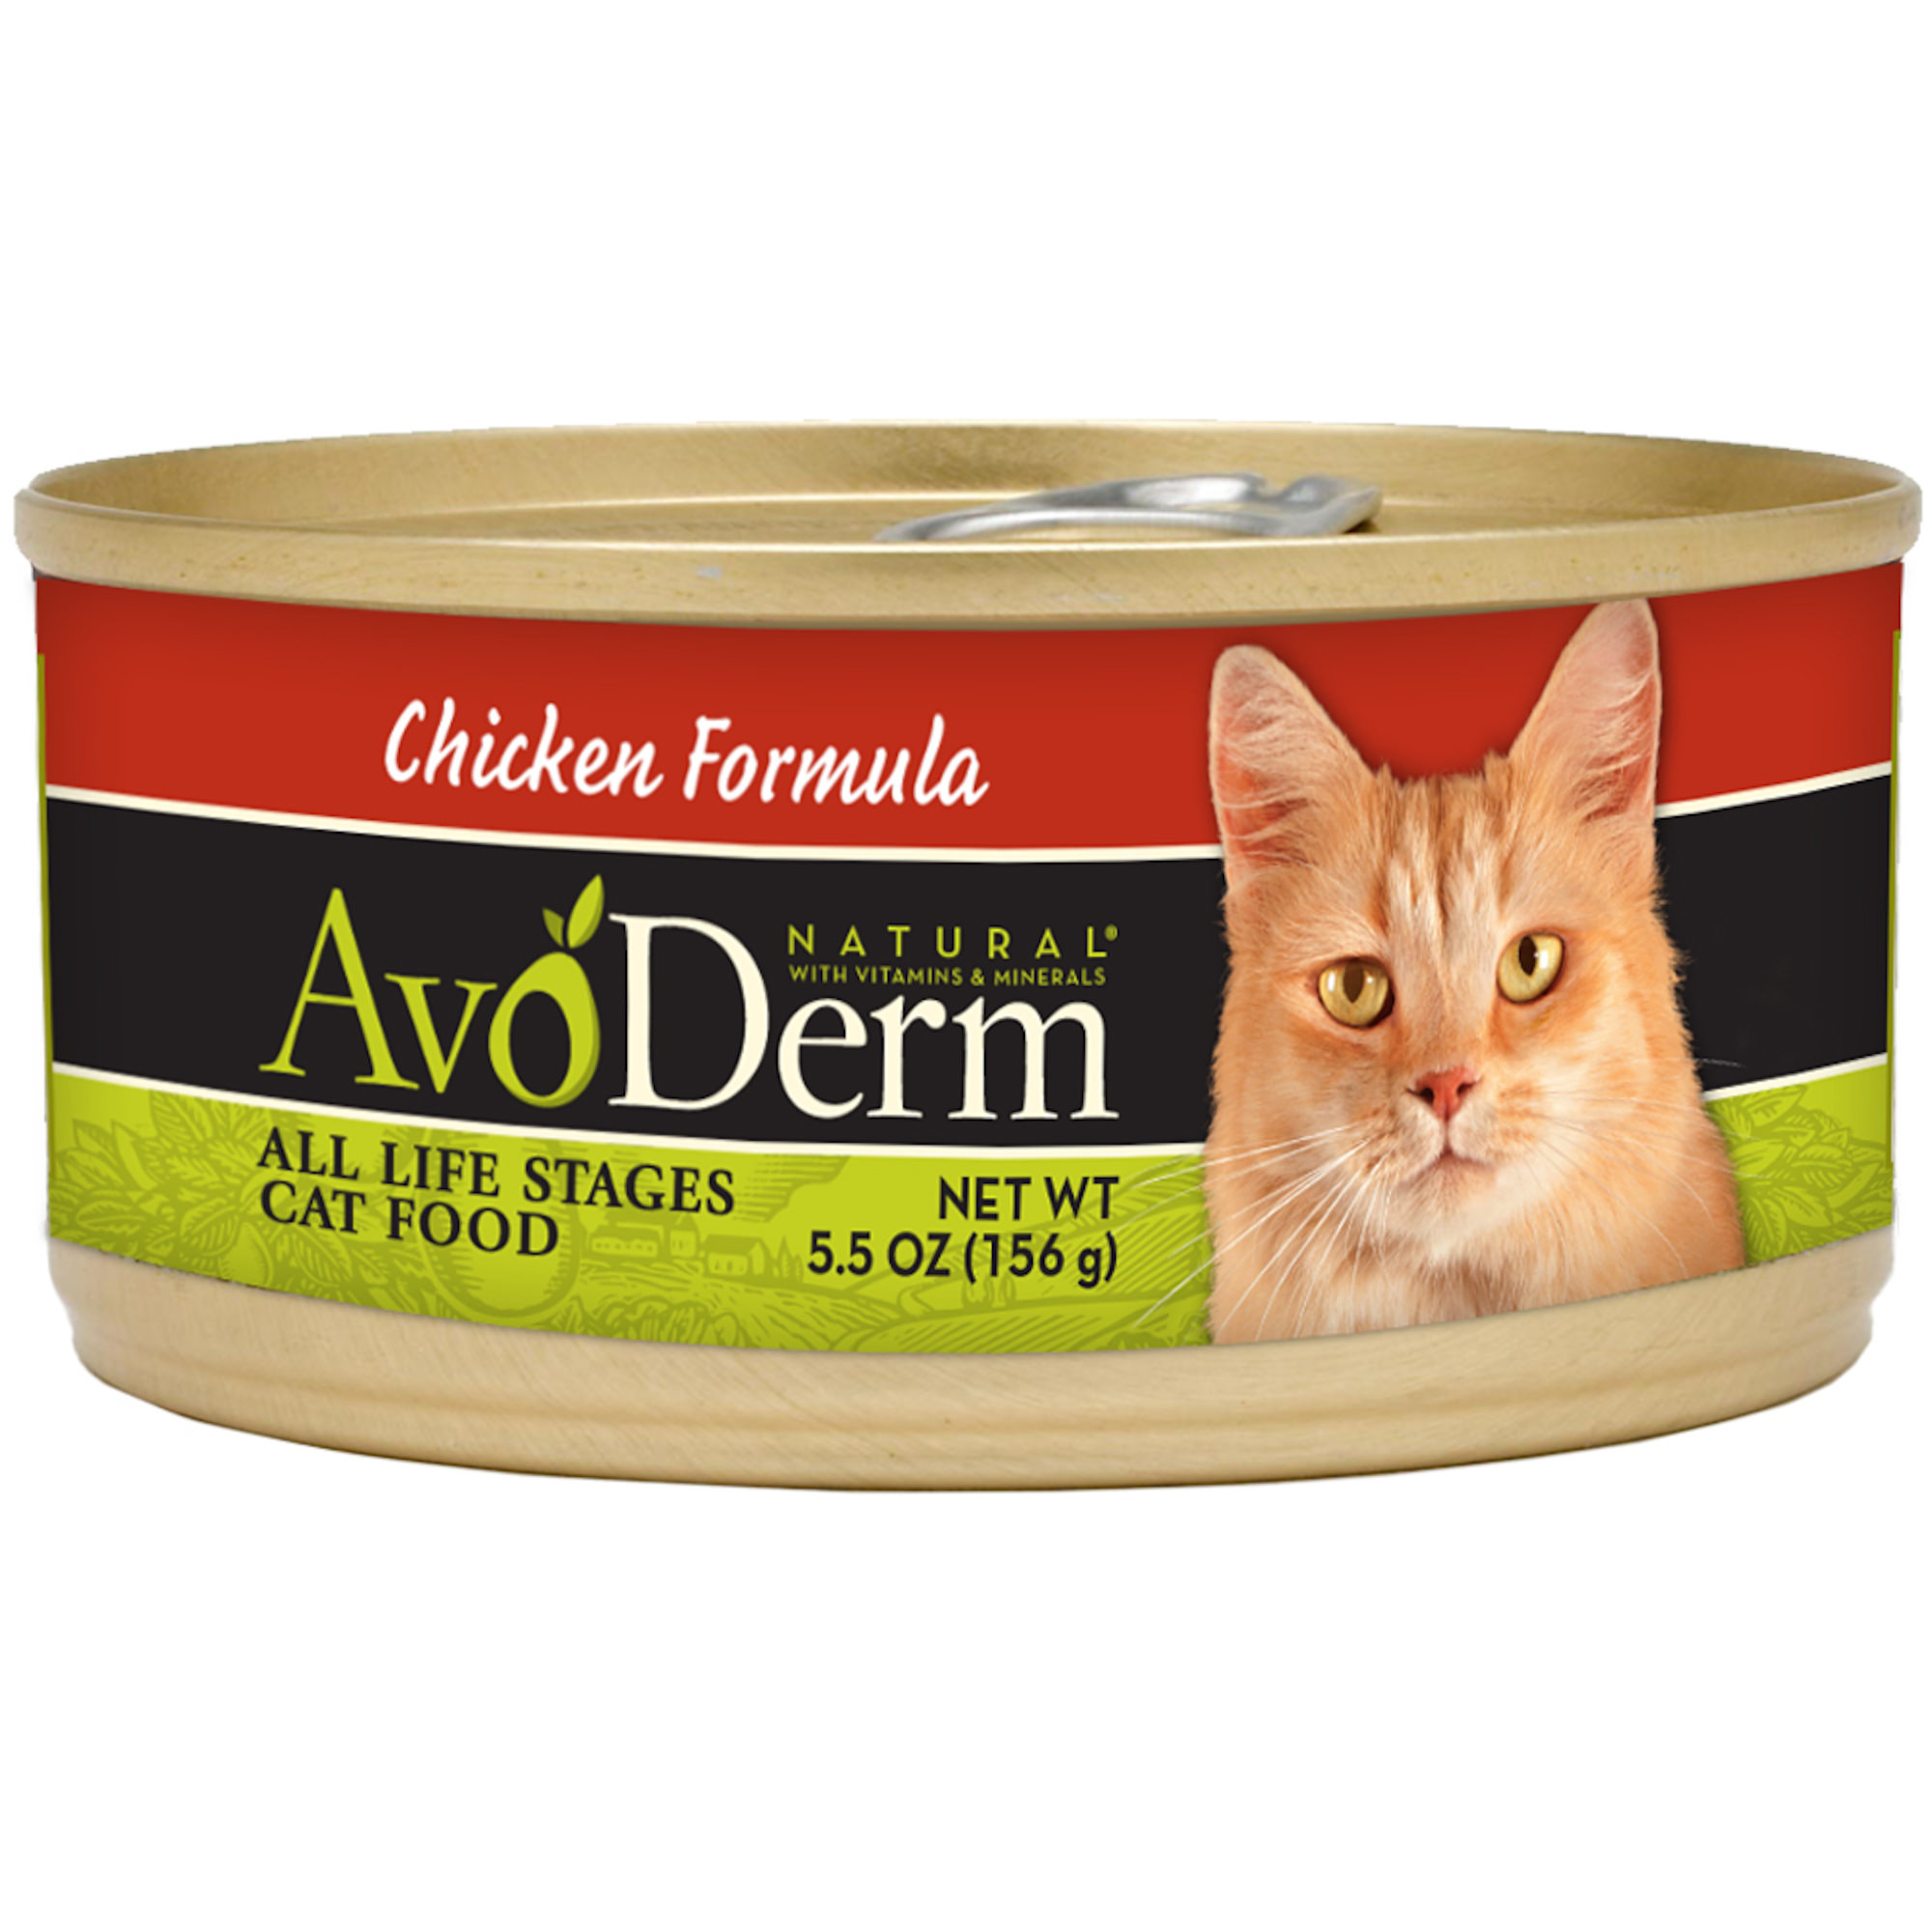 (2 Pack) AvoDerm Natural Chicken Formula for Cats, 5.5-Ounce Cans, Case of 24